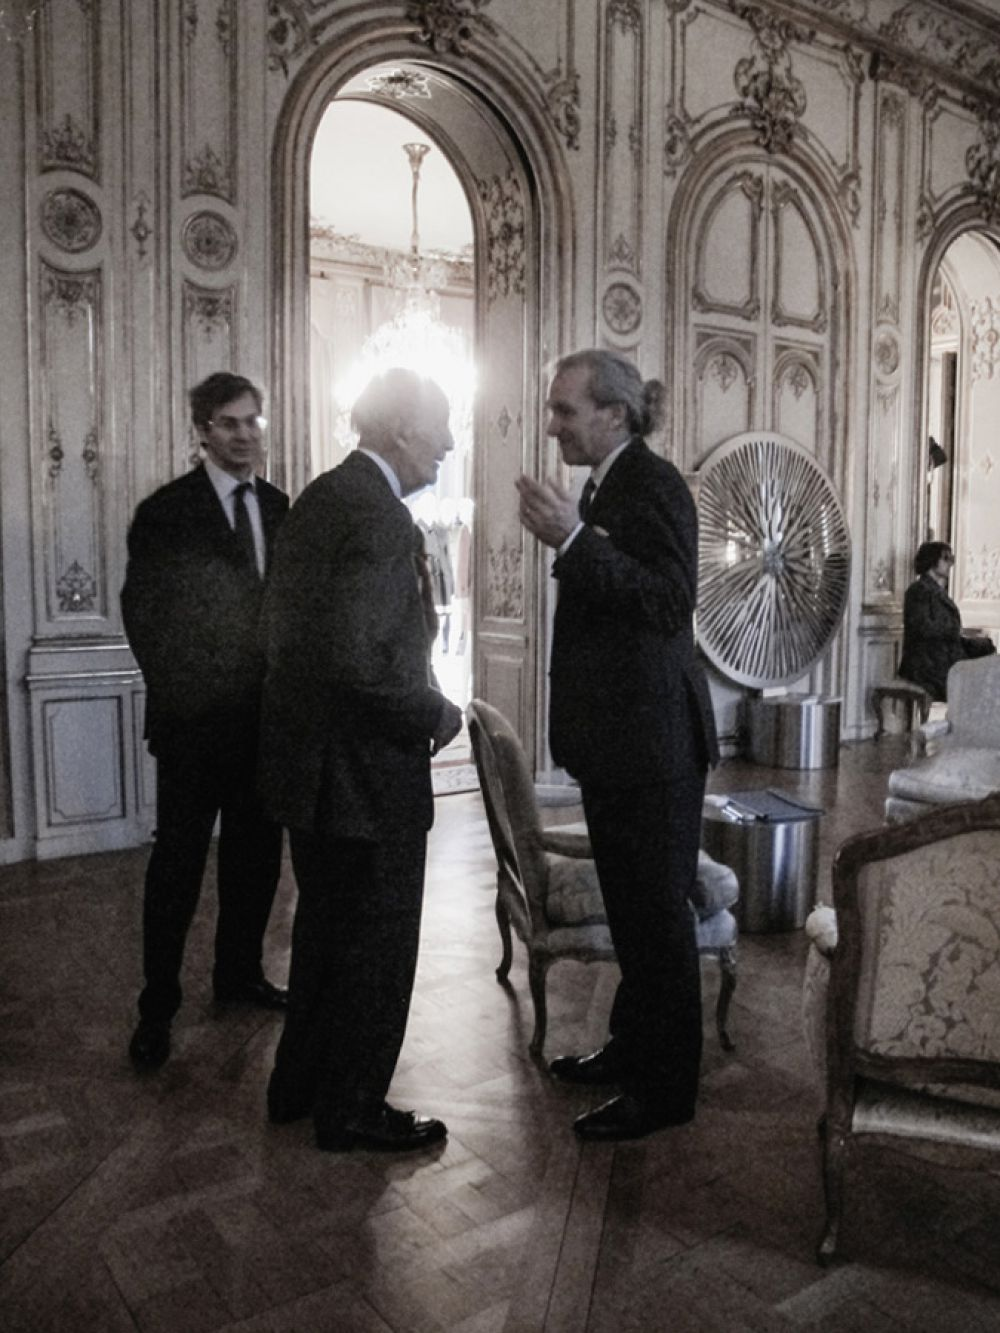 Studio Life 59 - Meeting with Former President of France